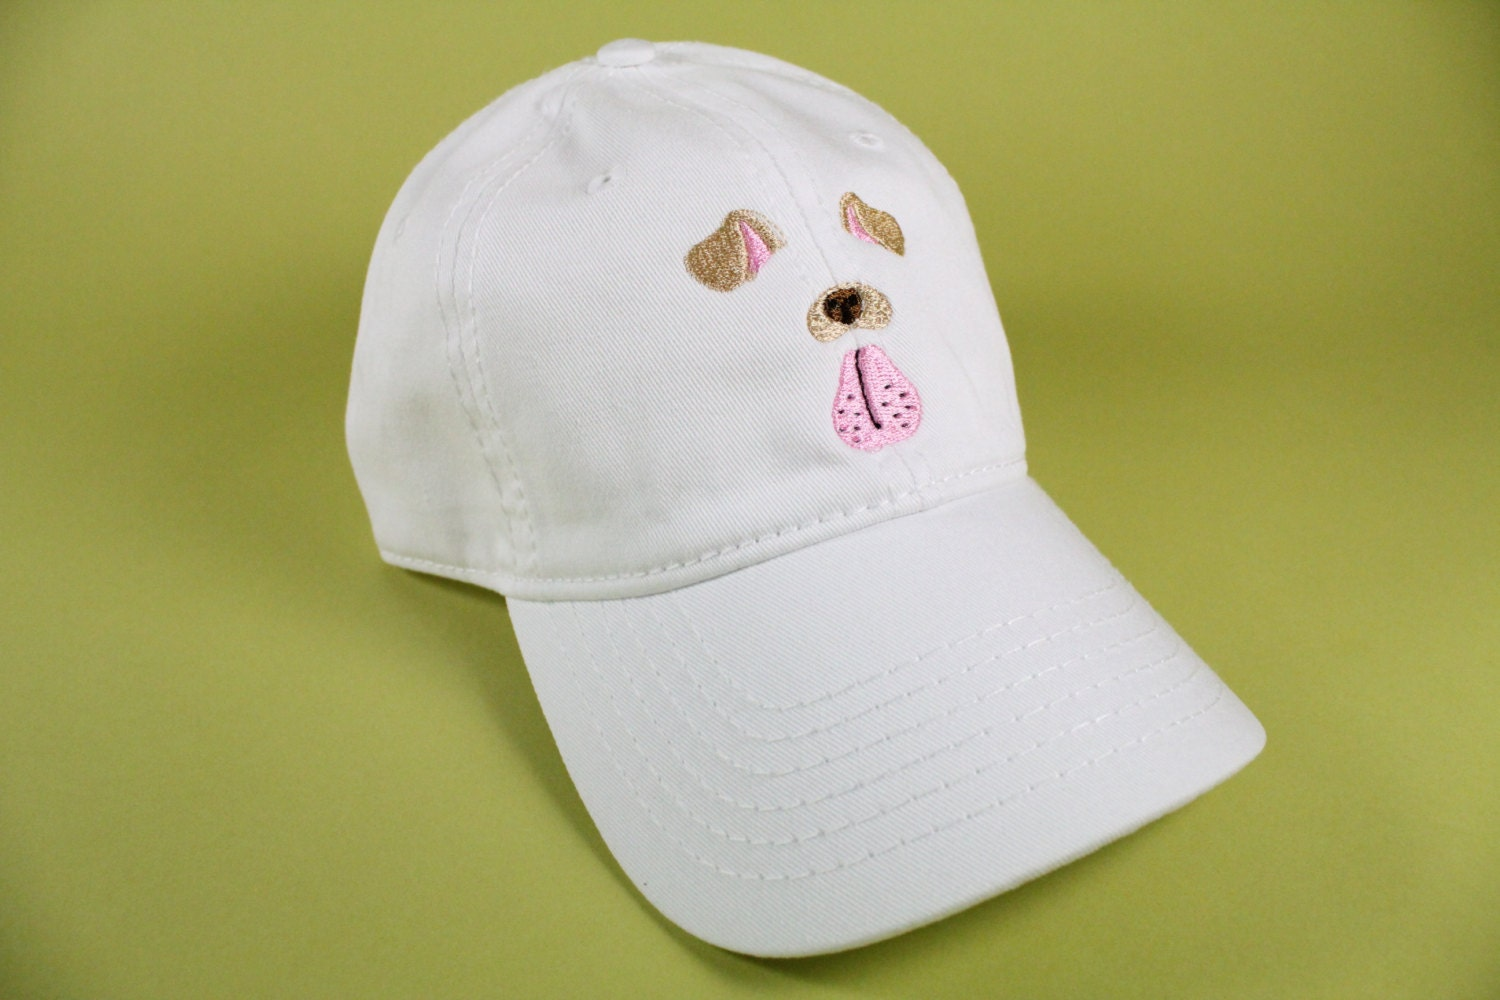 White baseball caps for crafts - New Dog Face Selfie Filter Baseball Hat Dad Hat Low Profile White Pink Black Casquette Embroidered